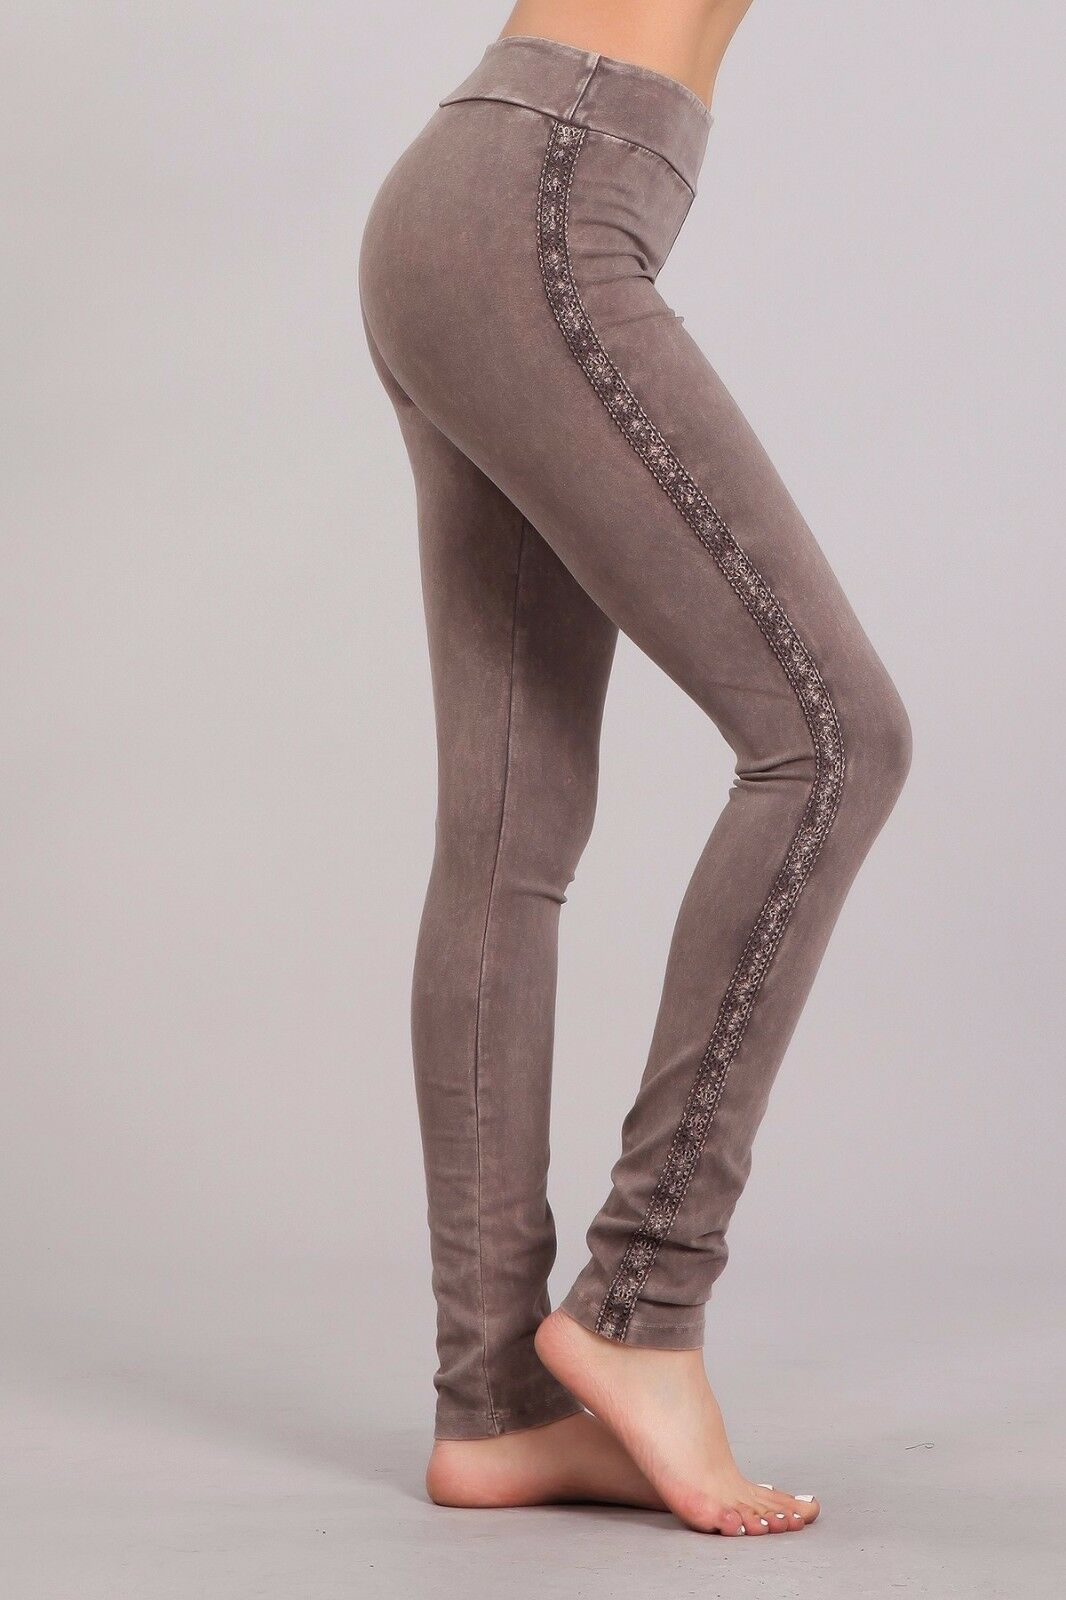 BOUTIQUE Chatoyant Jeggings Leggings with crochet accents side Taupe New M MED